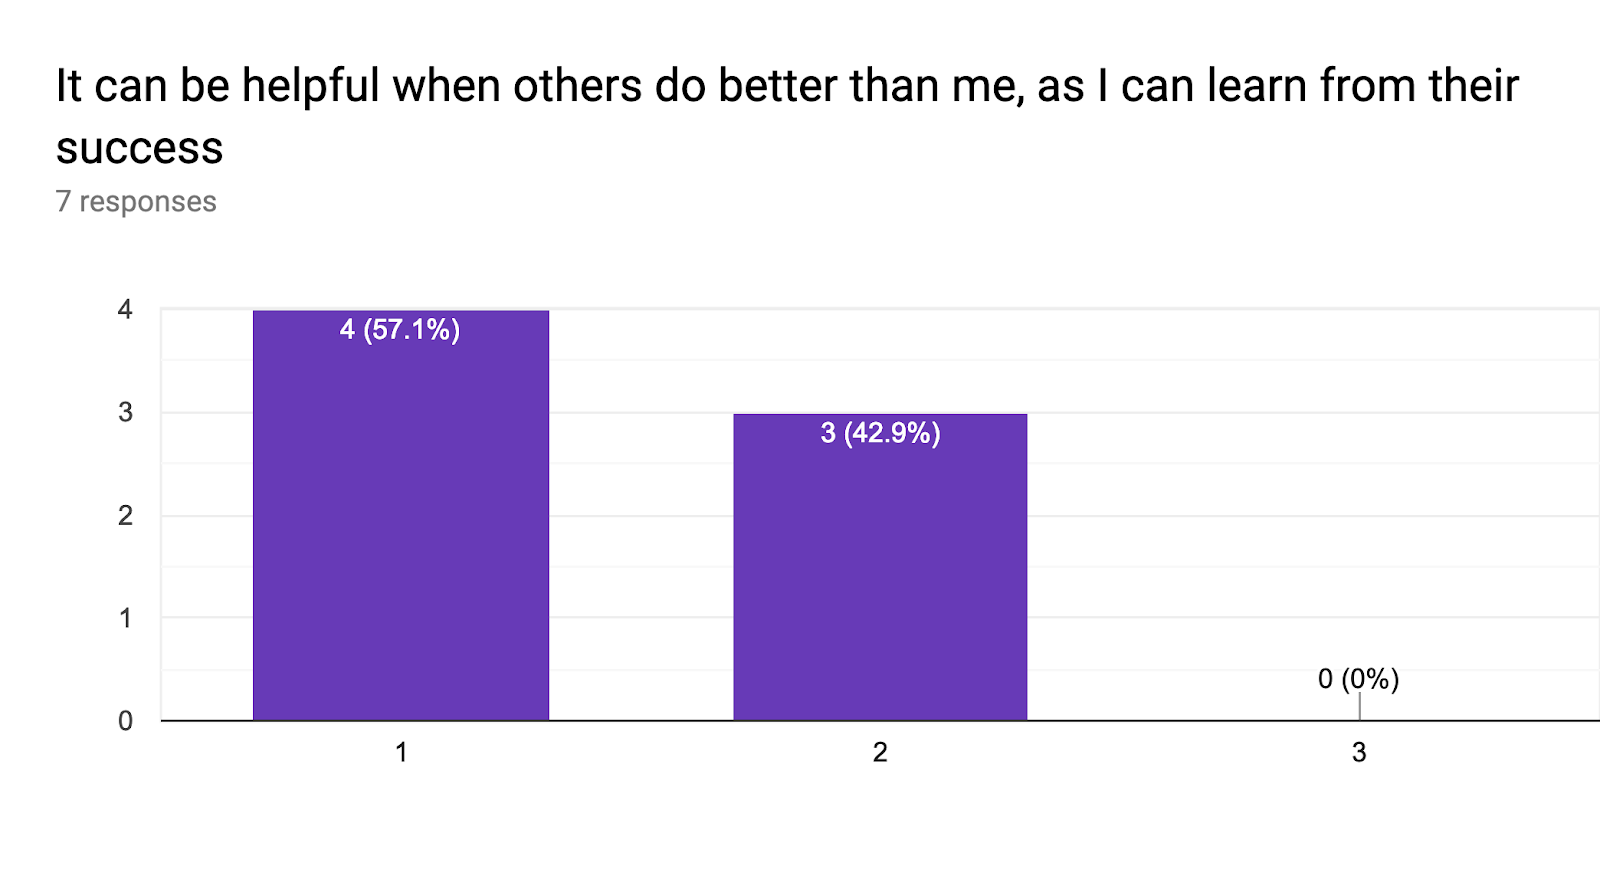 Forms response chart. Question title: It can be helpful when others do better than me, as I can learn from their success. Number of responses: 7 responses.